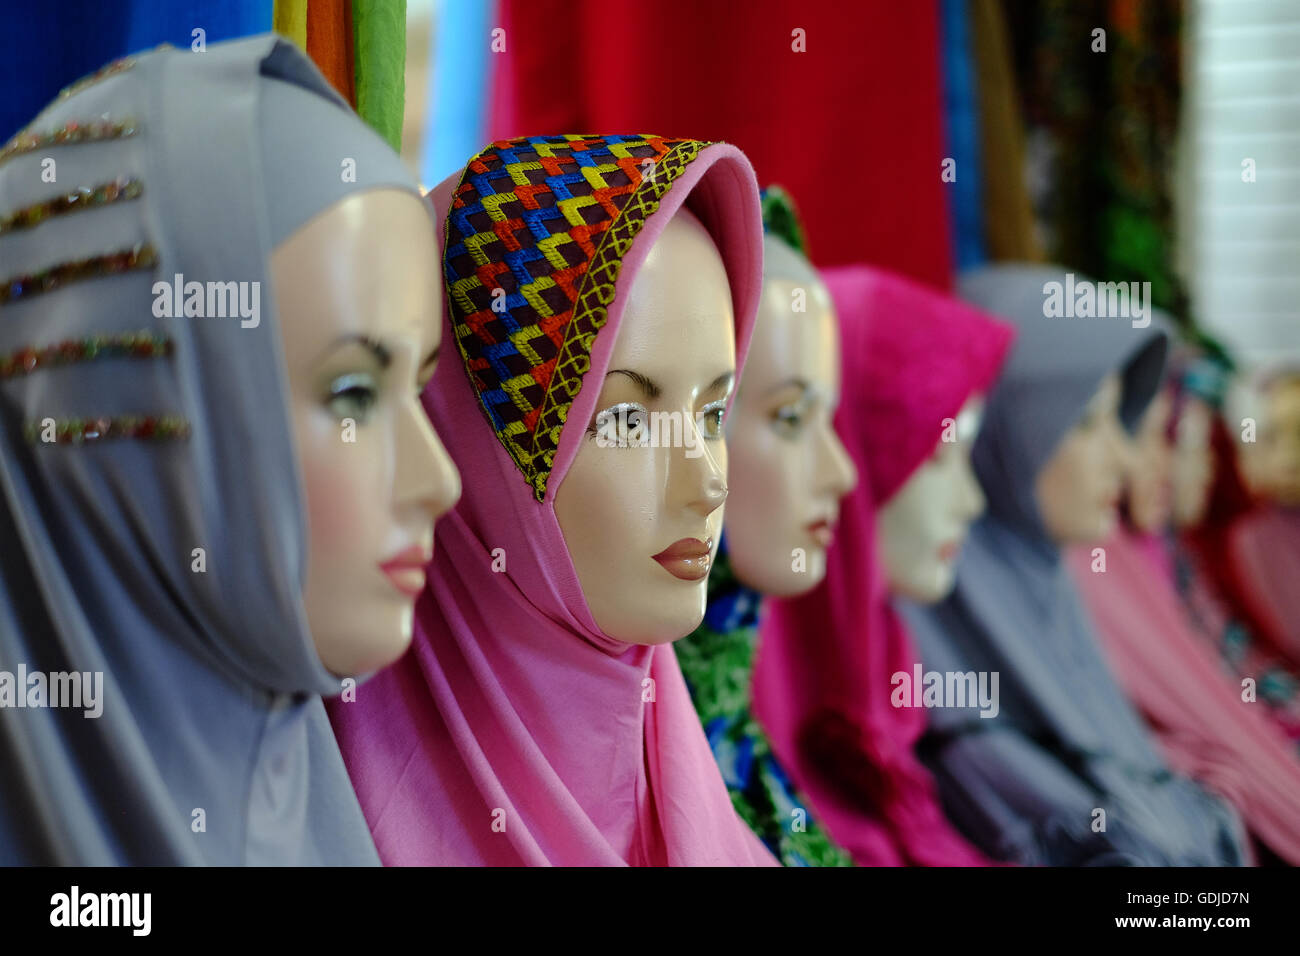 Mannequins showing the latest in hijab head scarf fashion, Yogyakarta, Indonesia - Stock Image